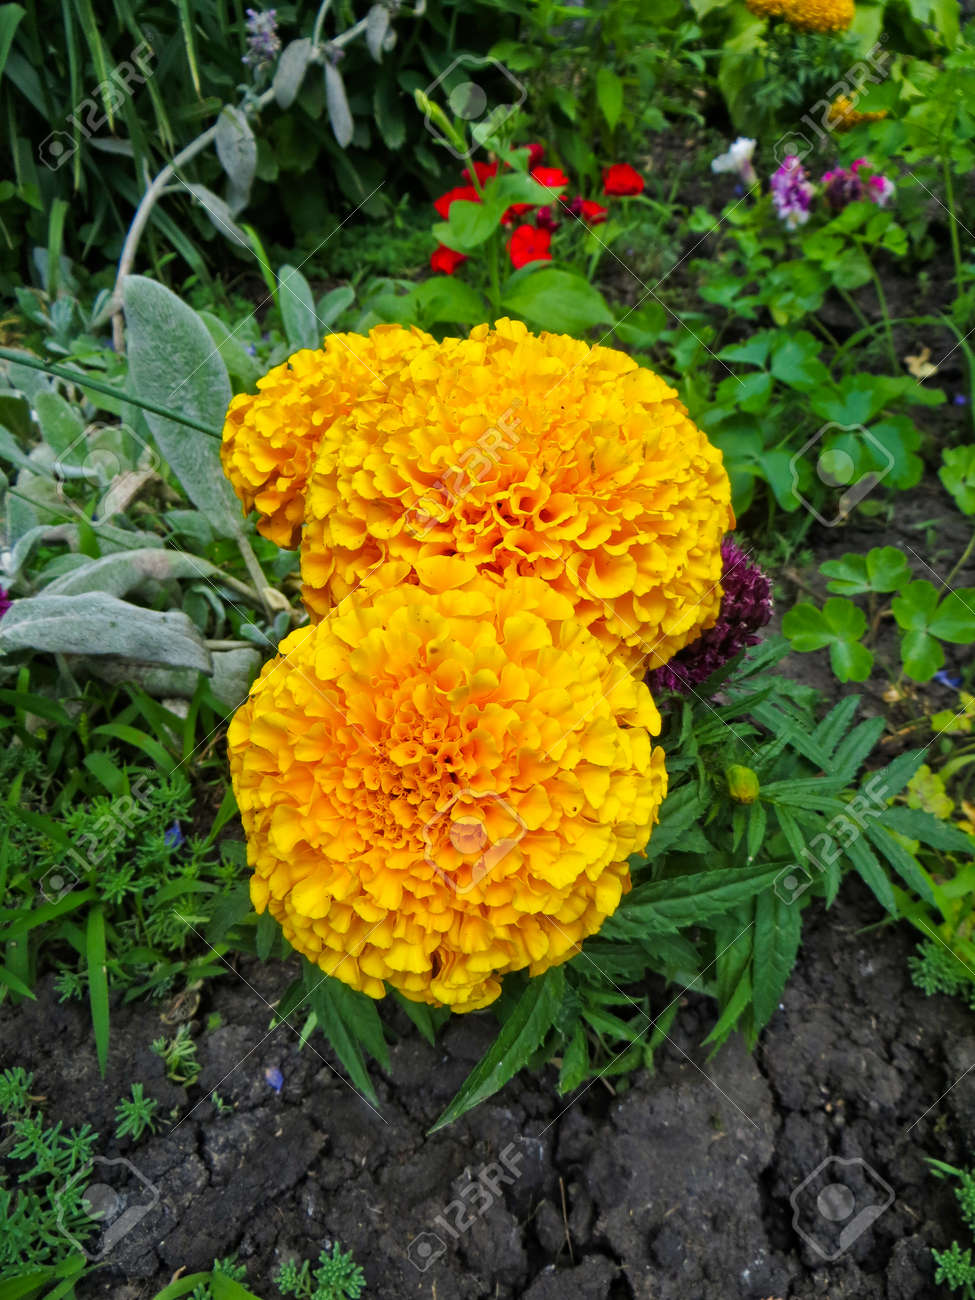 Marigold Flowers  Mexican Marigold  Aztec Marigold  On Flowerbed     Marigold flowers  Mexican marigold  Aztec marigold  on flowerbed Stock  Photo   63337279